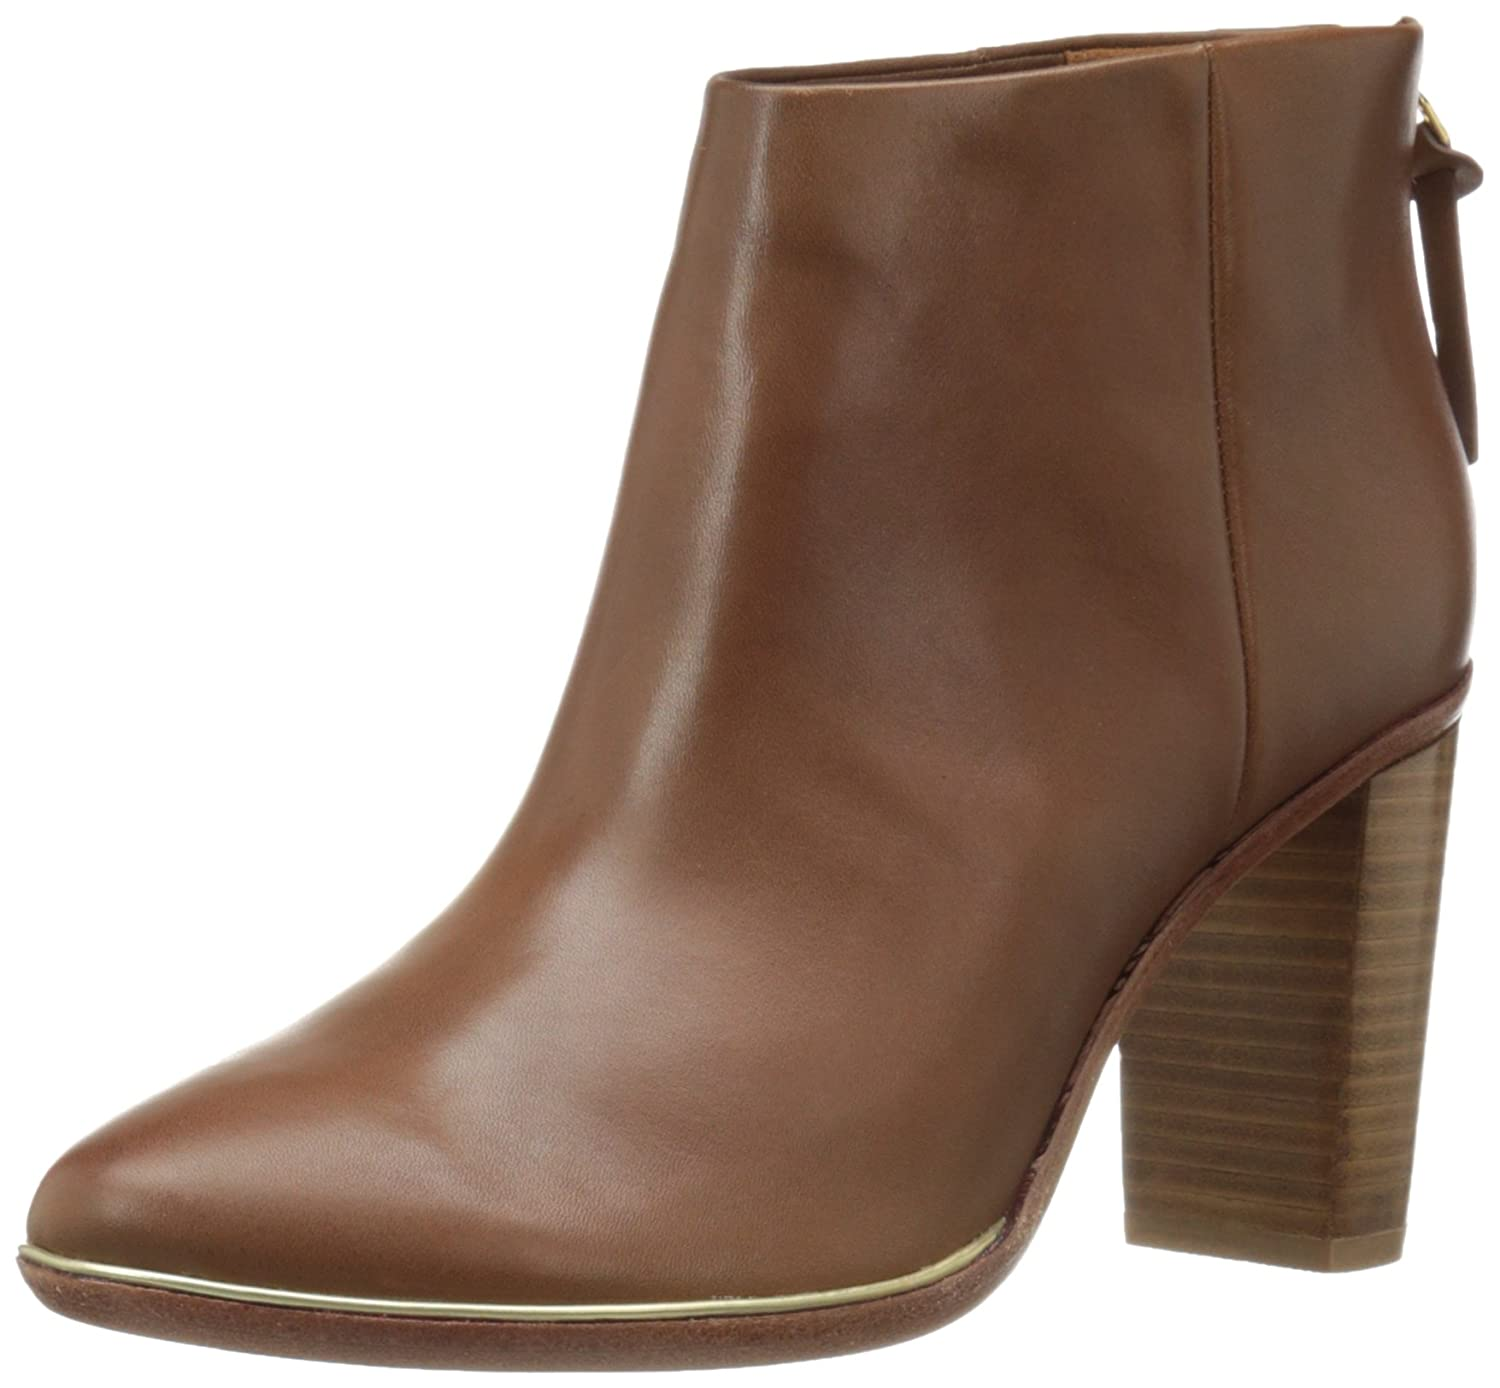 13a31891b4b Ted Baker Women's Lorca Casual Boot Ankle Bootie